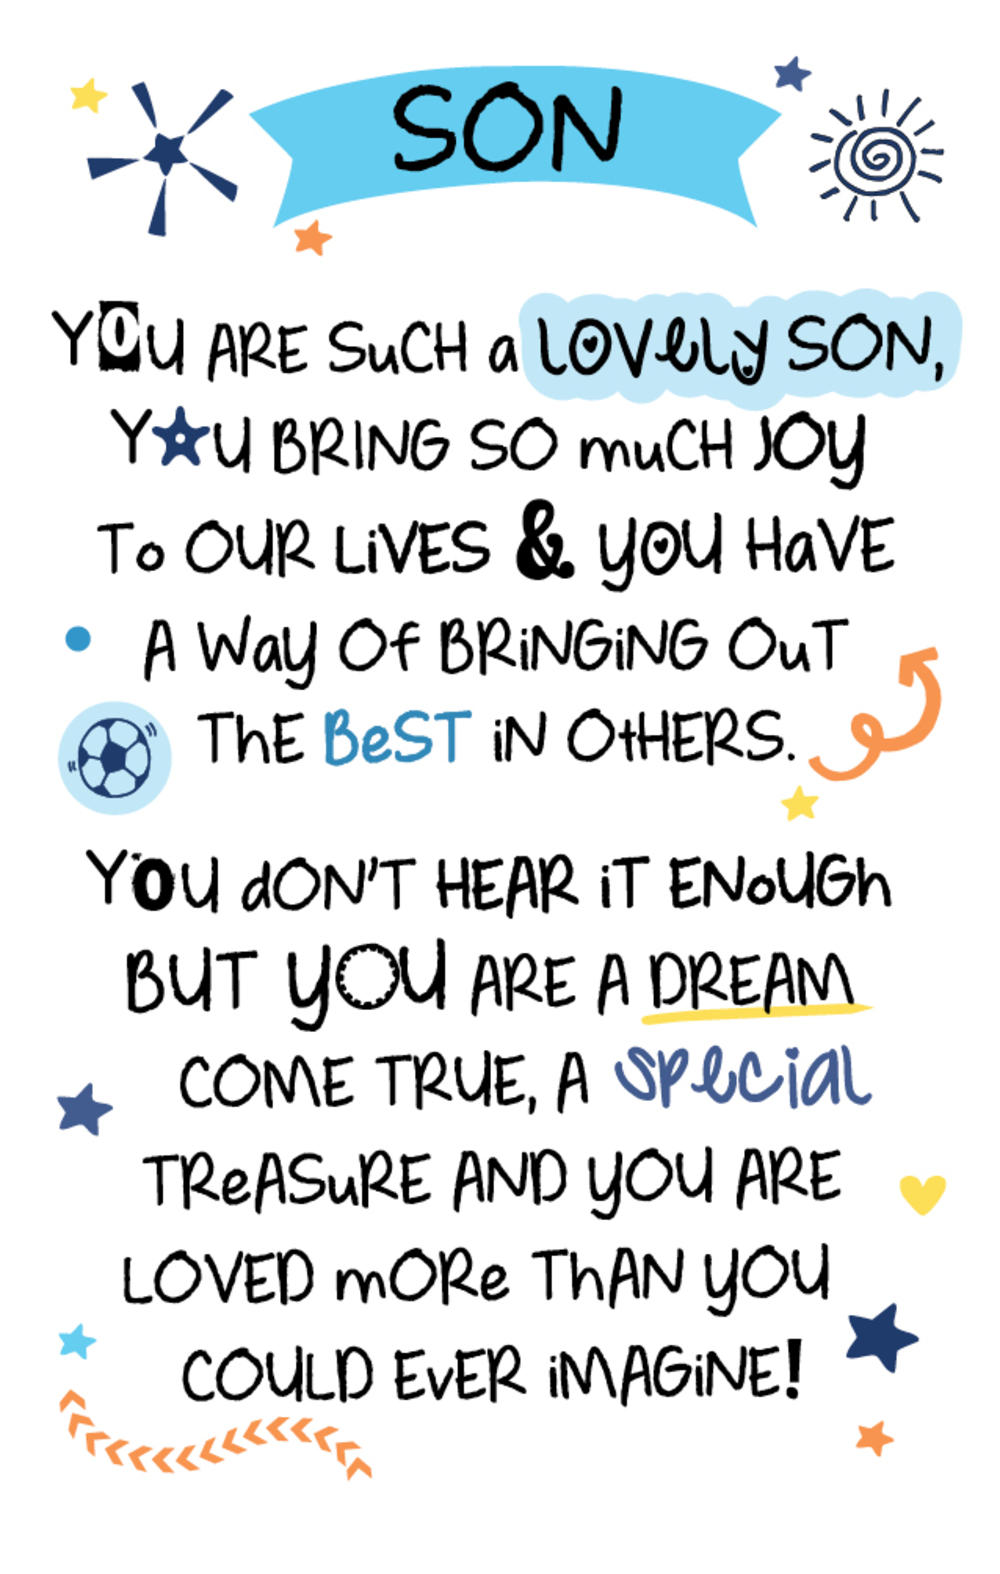 Lovely Son Inspired Words Keepsake Credit Card & Envelope